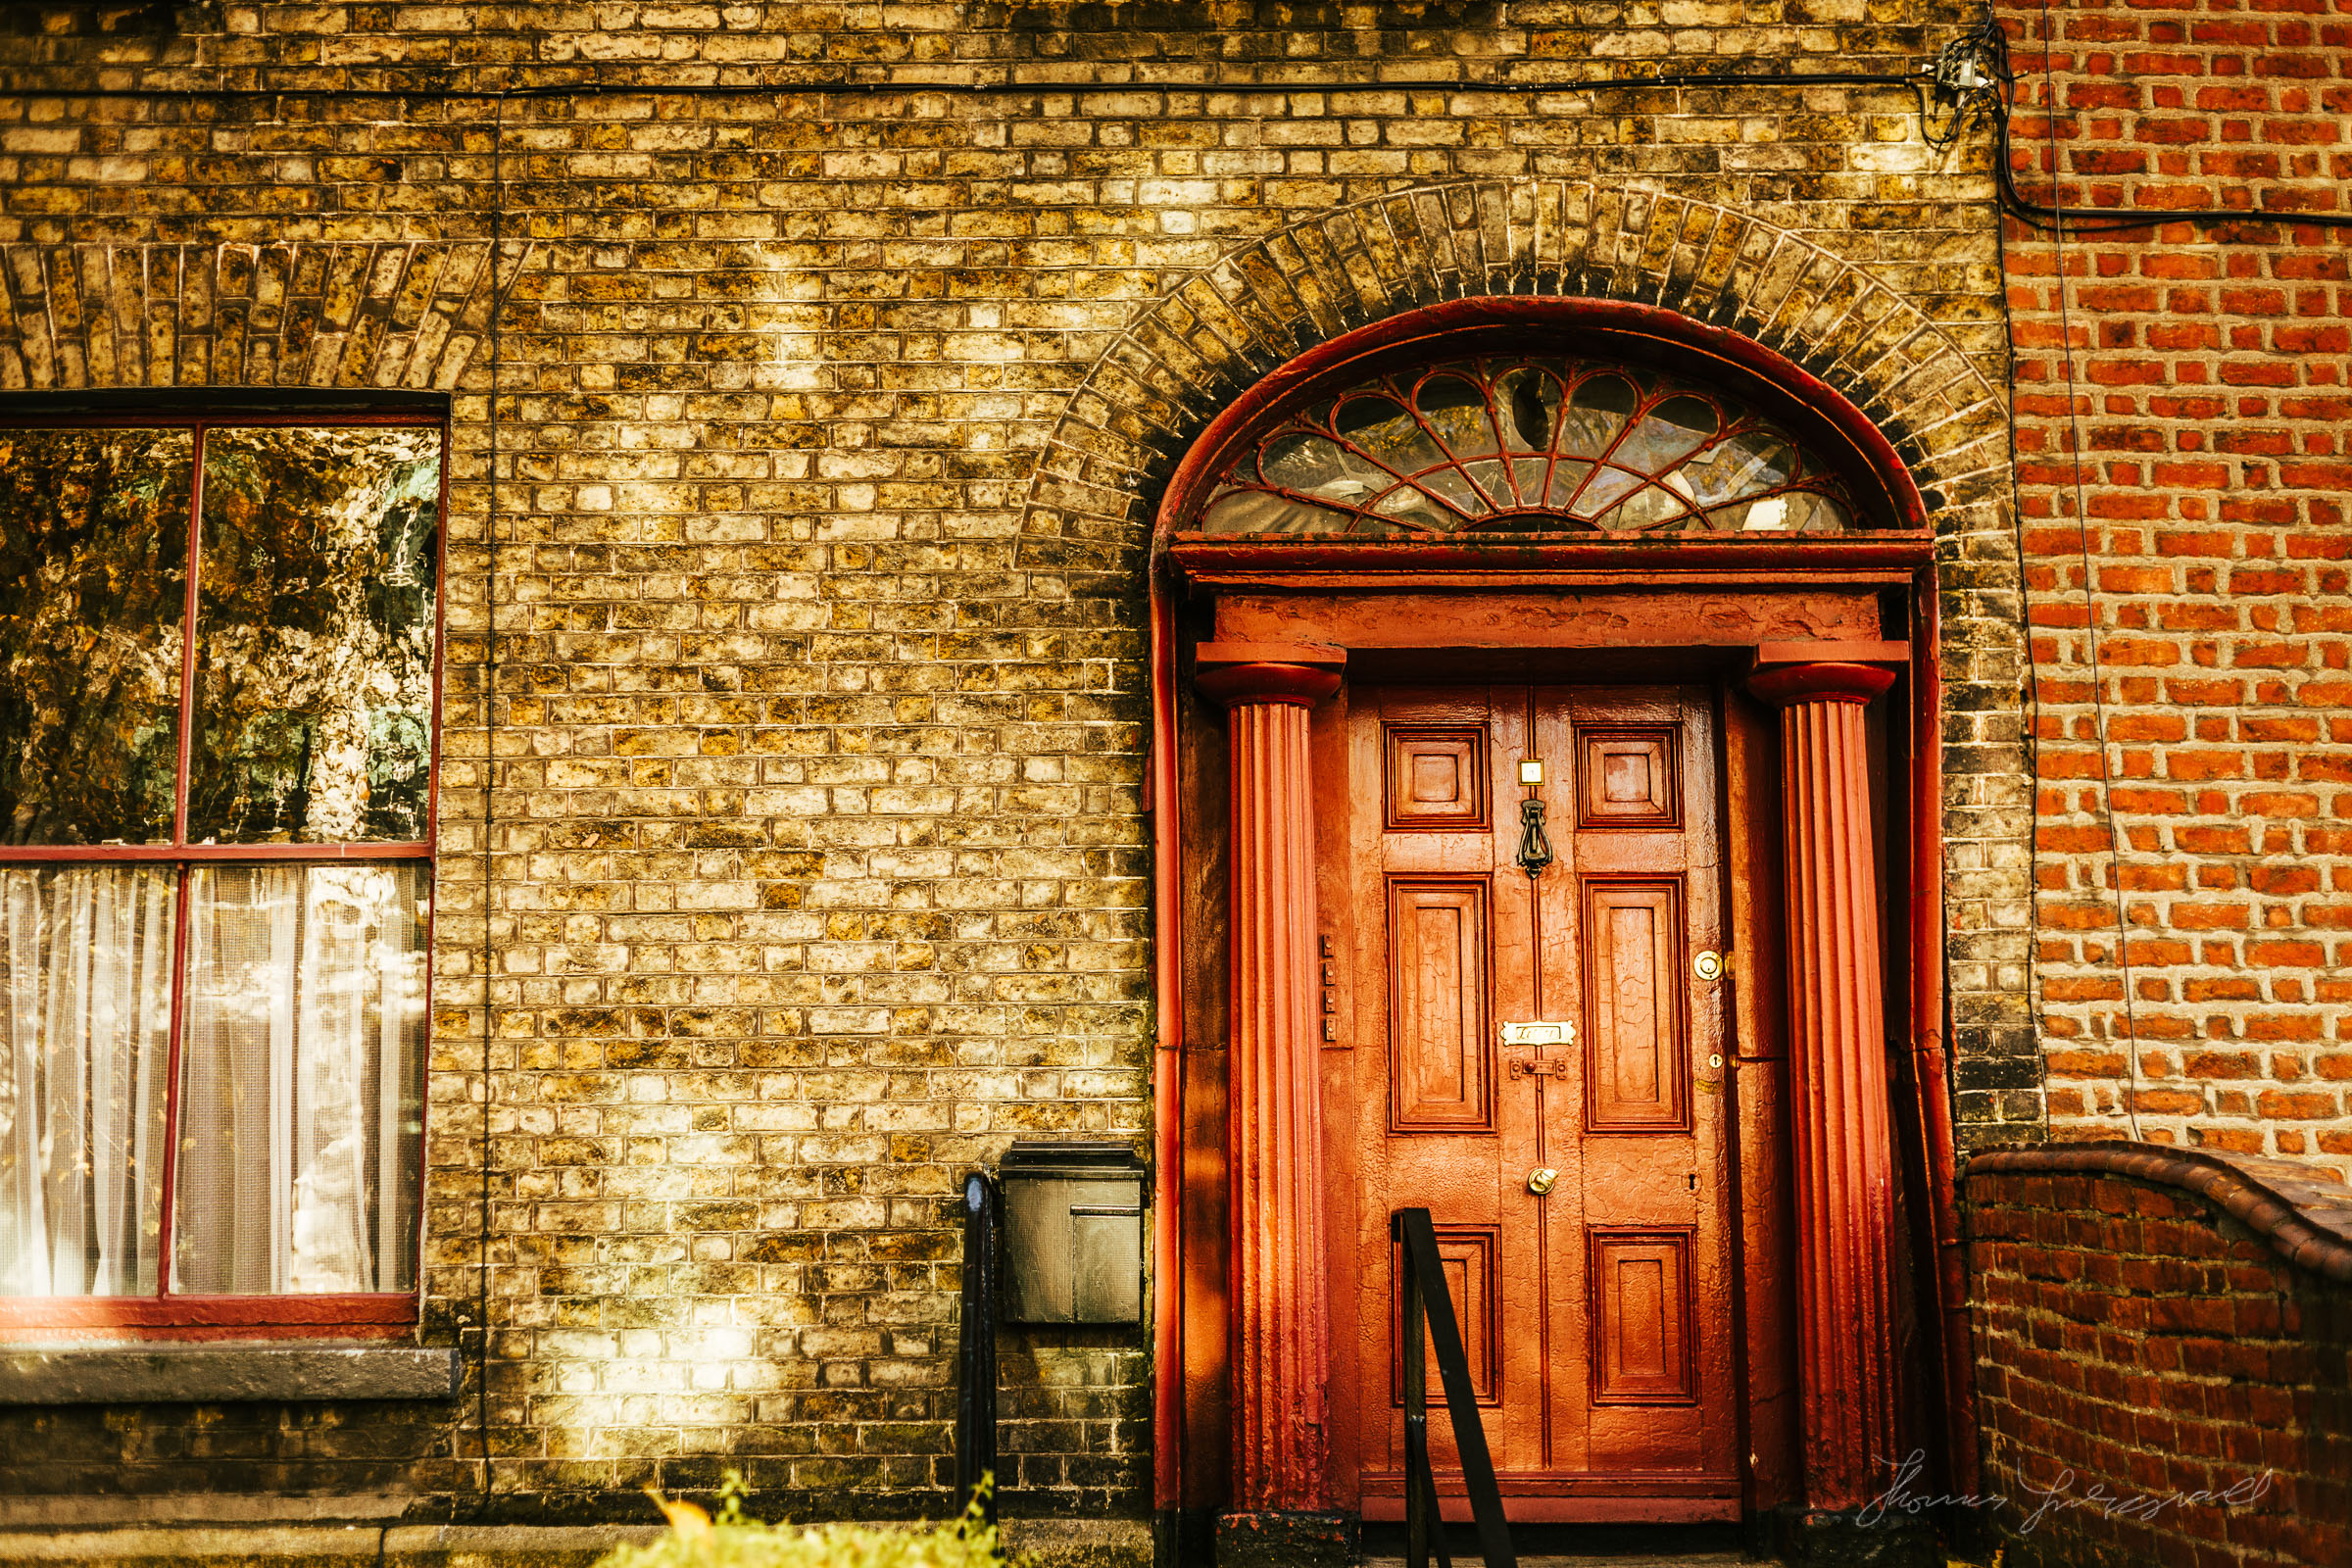 Red door on a brown brick house